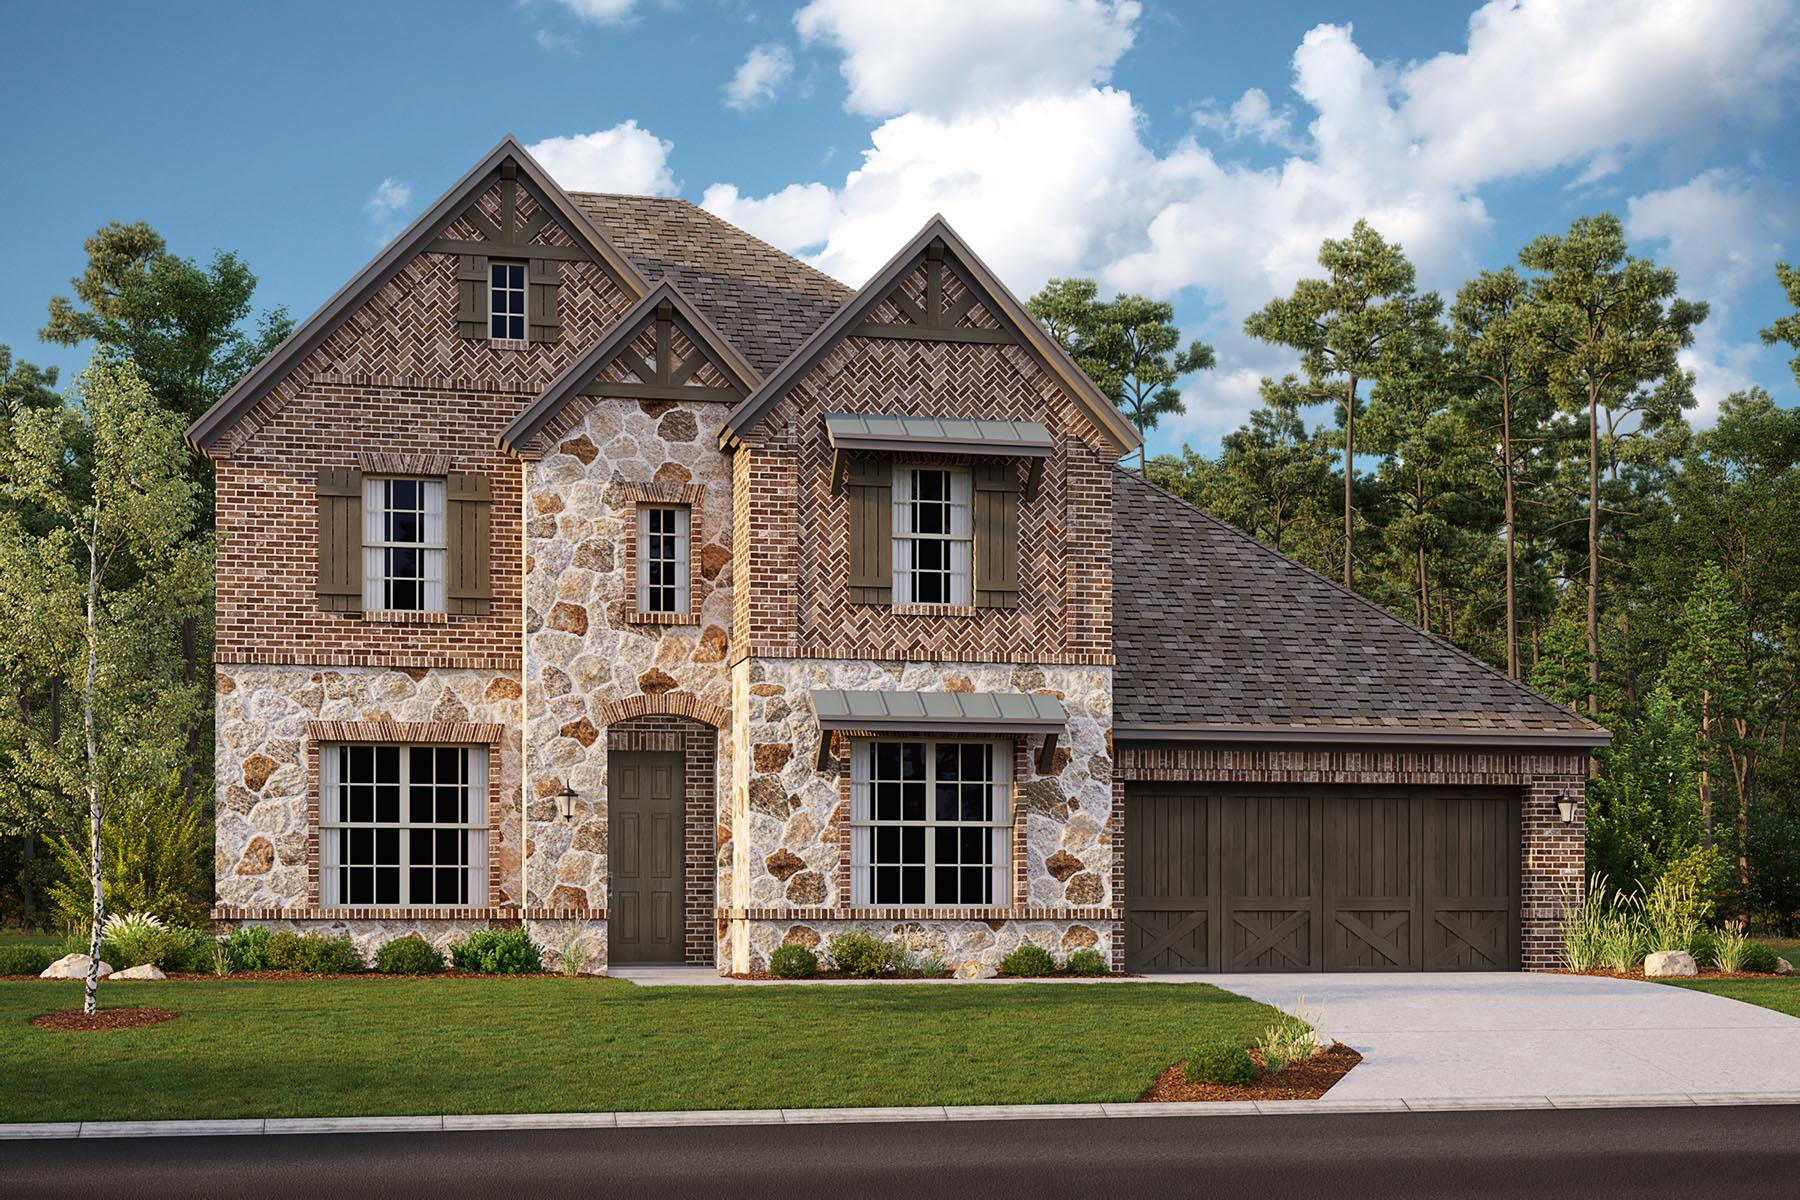 Shelby II Plan DAL_Shelby_D_ElevationExt_1800x1200 at Villages of Hurricane Creek in Anna Texas by Mattamy Homes